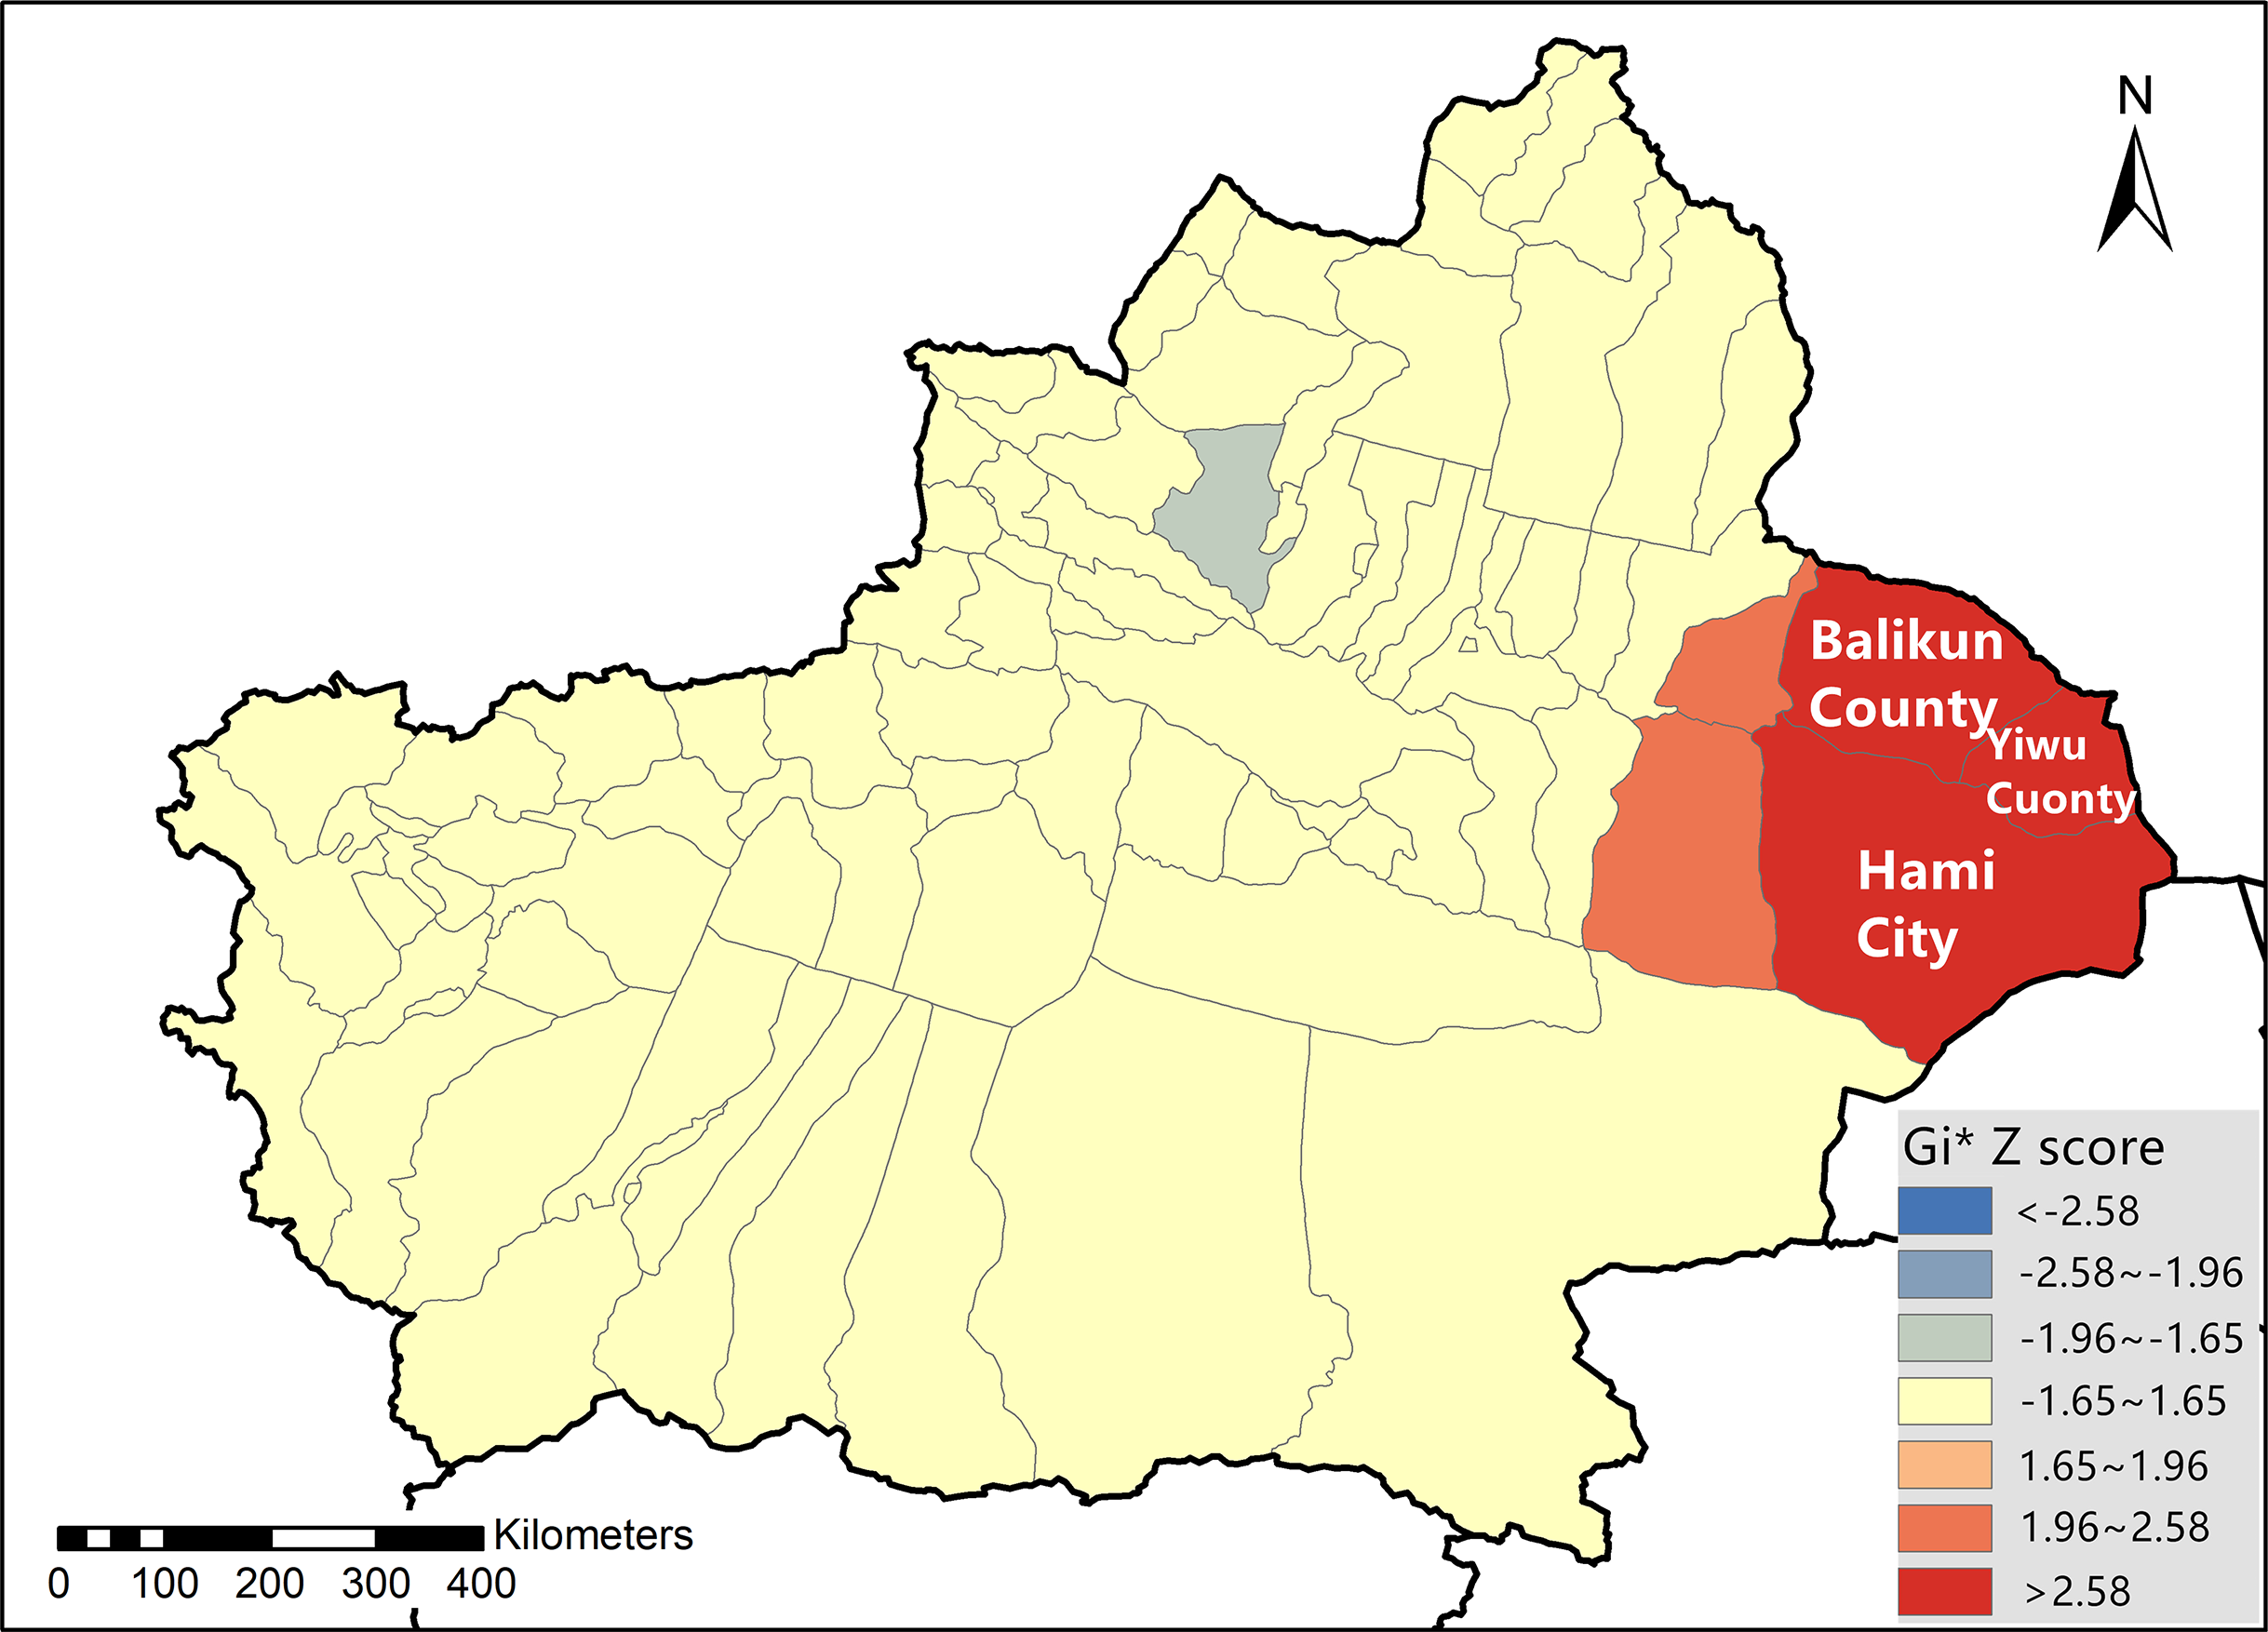 epidemiology and spatial distribution of bluetongue virus in Mongolia Animals download full size image